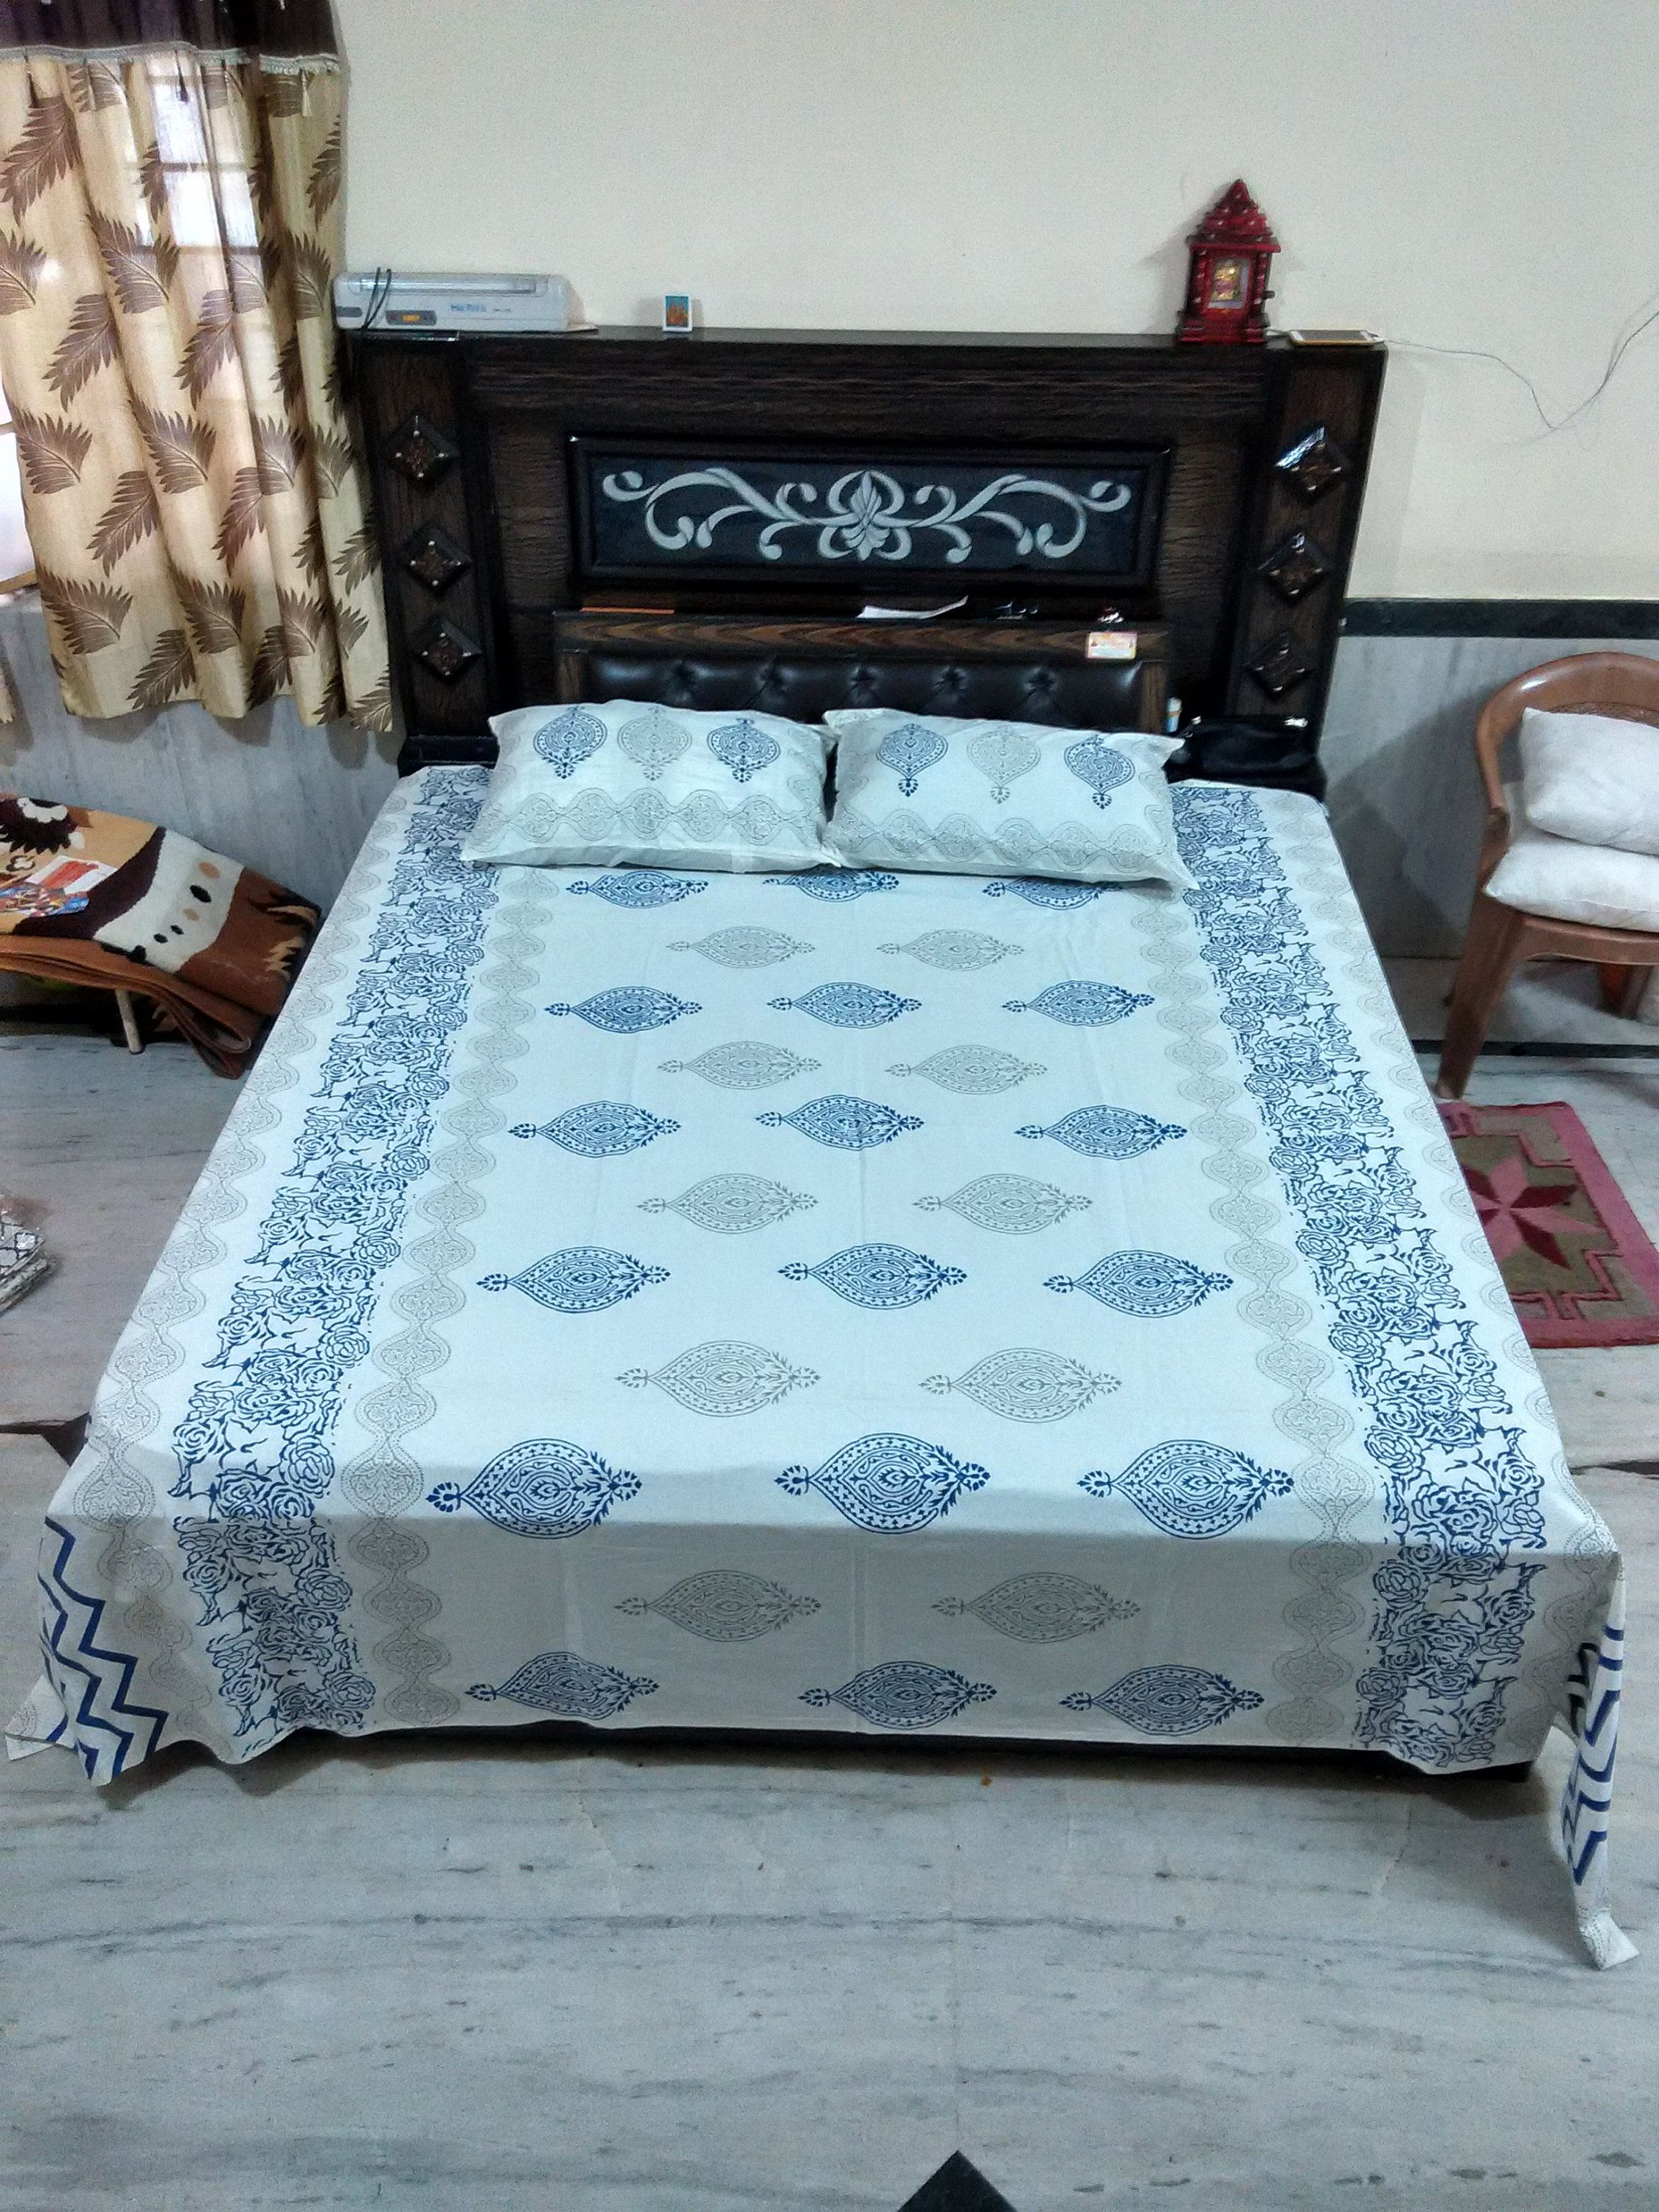 Pillow Cases Soft Cotton Bed Sheet Double Bed Sheet King Size Cotton Flat Bed Sheet Bedroom Decor Hand Block Printed